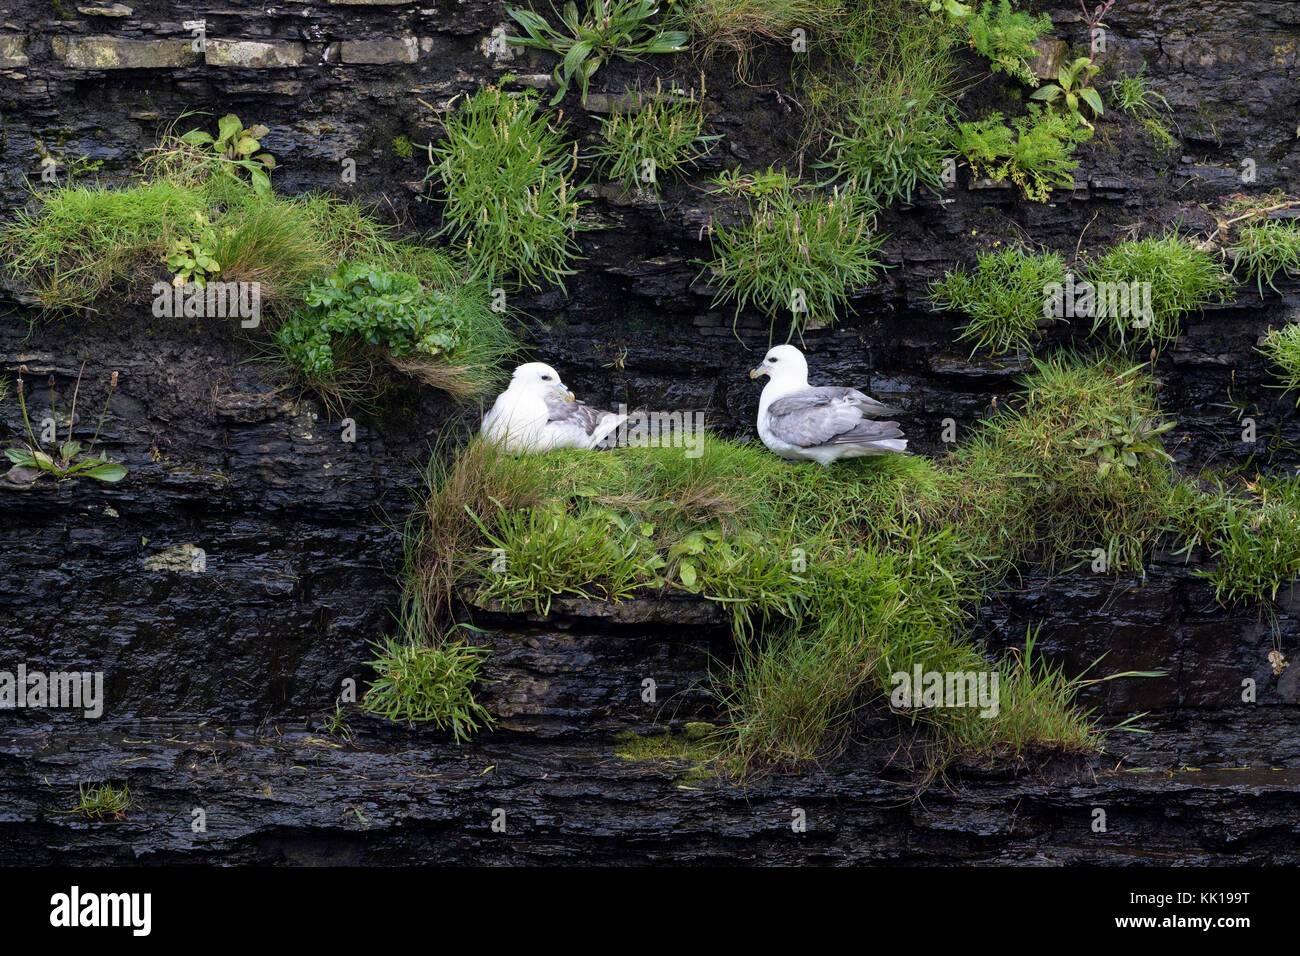 Northern Fulmar (Fulmarus glacialis) adult pair, nesting on cliff ledge, Skirza head, Scotland, UK - Stock Image